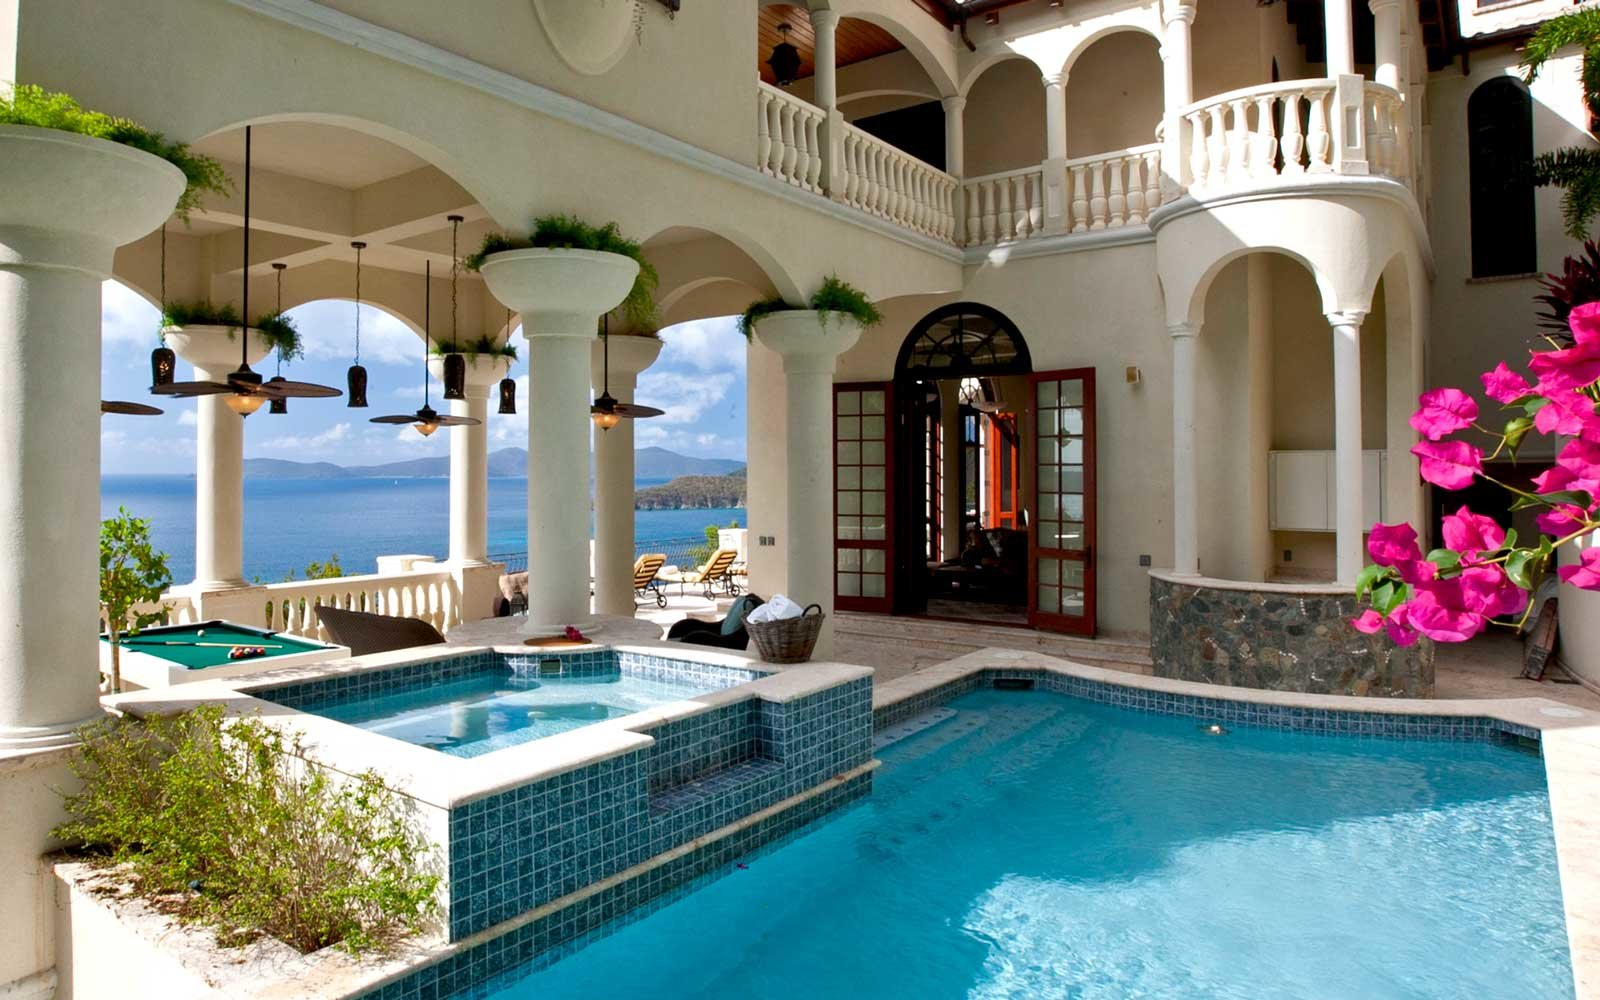 Villa Nonna luxury villa rental in St John, available from ThirdHome